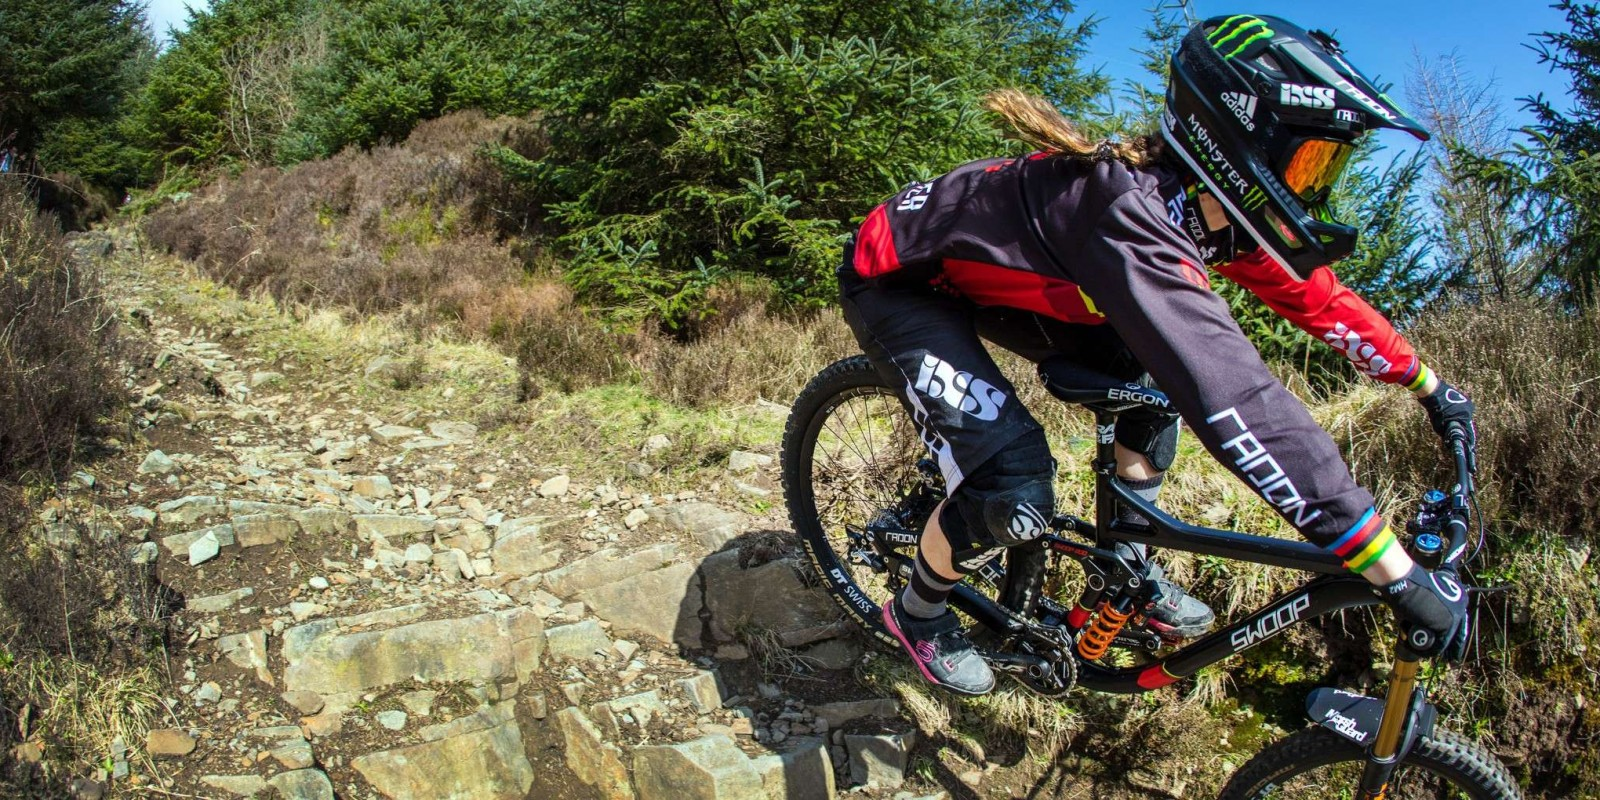 Manon's Diaries / Photo shoot at the DH track at the Rheola forest in Wales.